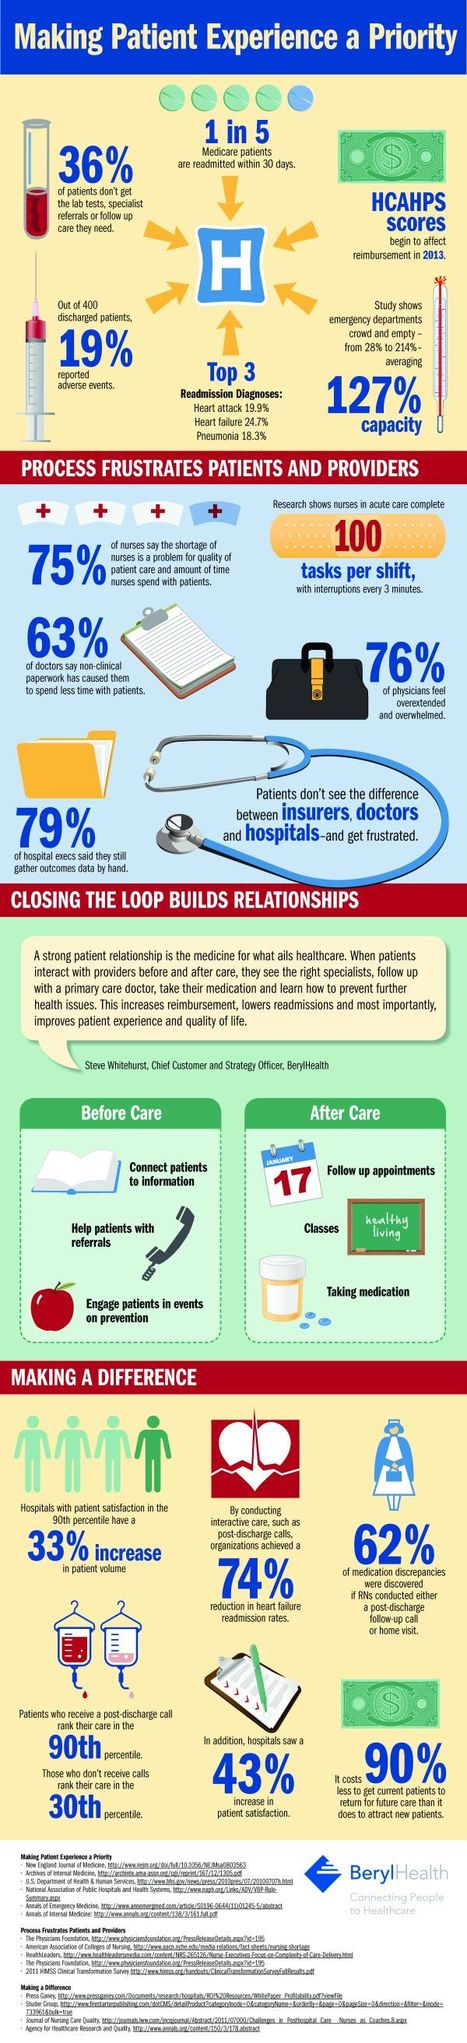 14 Great Health Care Marketing Ideas | Top of Mind Awareness | Scoop.it